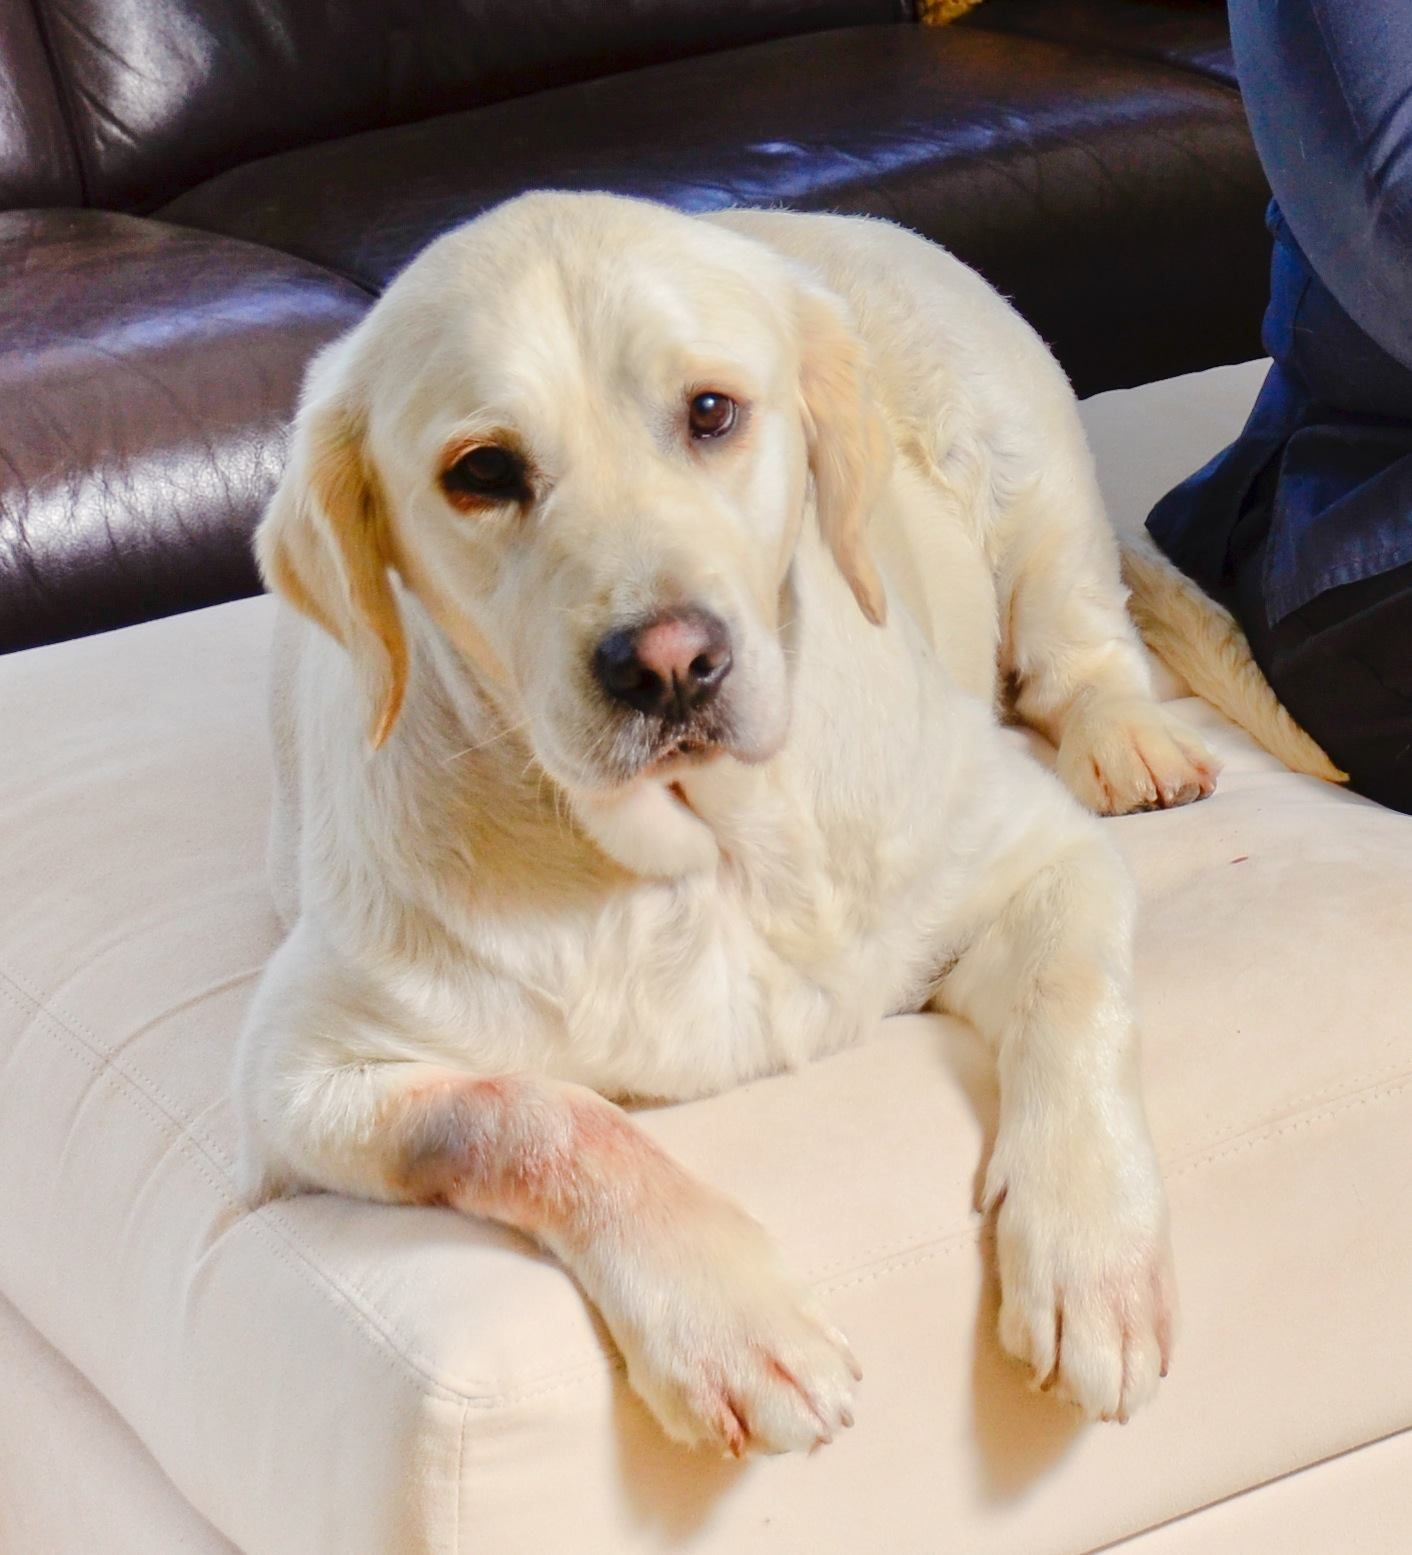 Canine herbal therapy - Turmeric For Dogs Atopic Dermatitis Treatment For Olivia The Golden Retriever